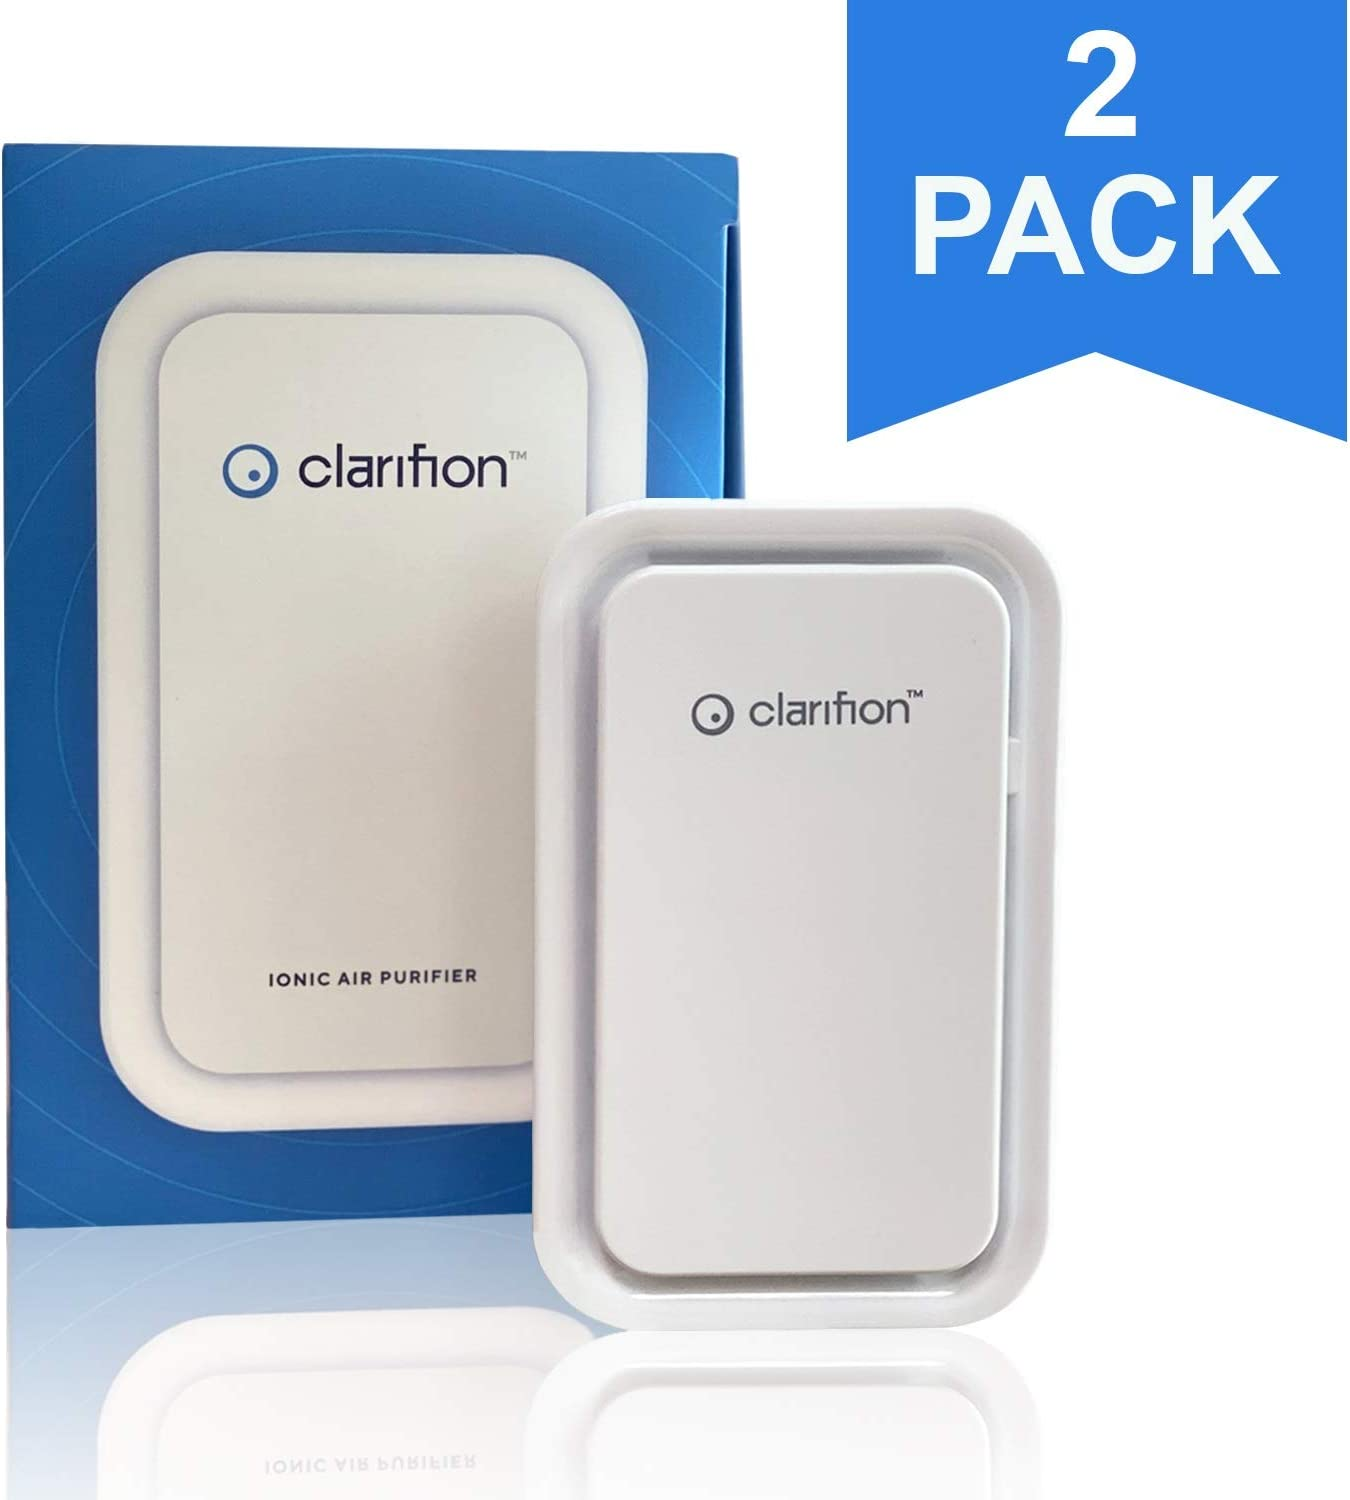 Clarifion - Negative Ion Generator with Highest Output (2 Pack) Filterless Mobile Ionizer & Travel Air Purifier, Plug in, Eliminates: Pollutants, Allergens, Germs, Smoke, Bacteria, Pet Dander & More